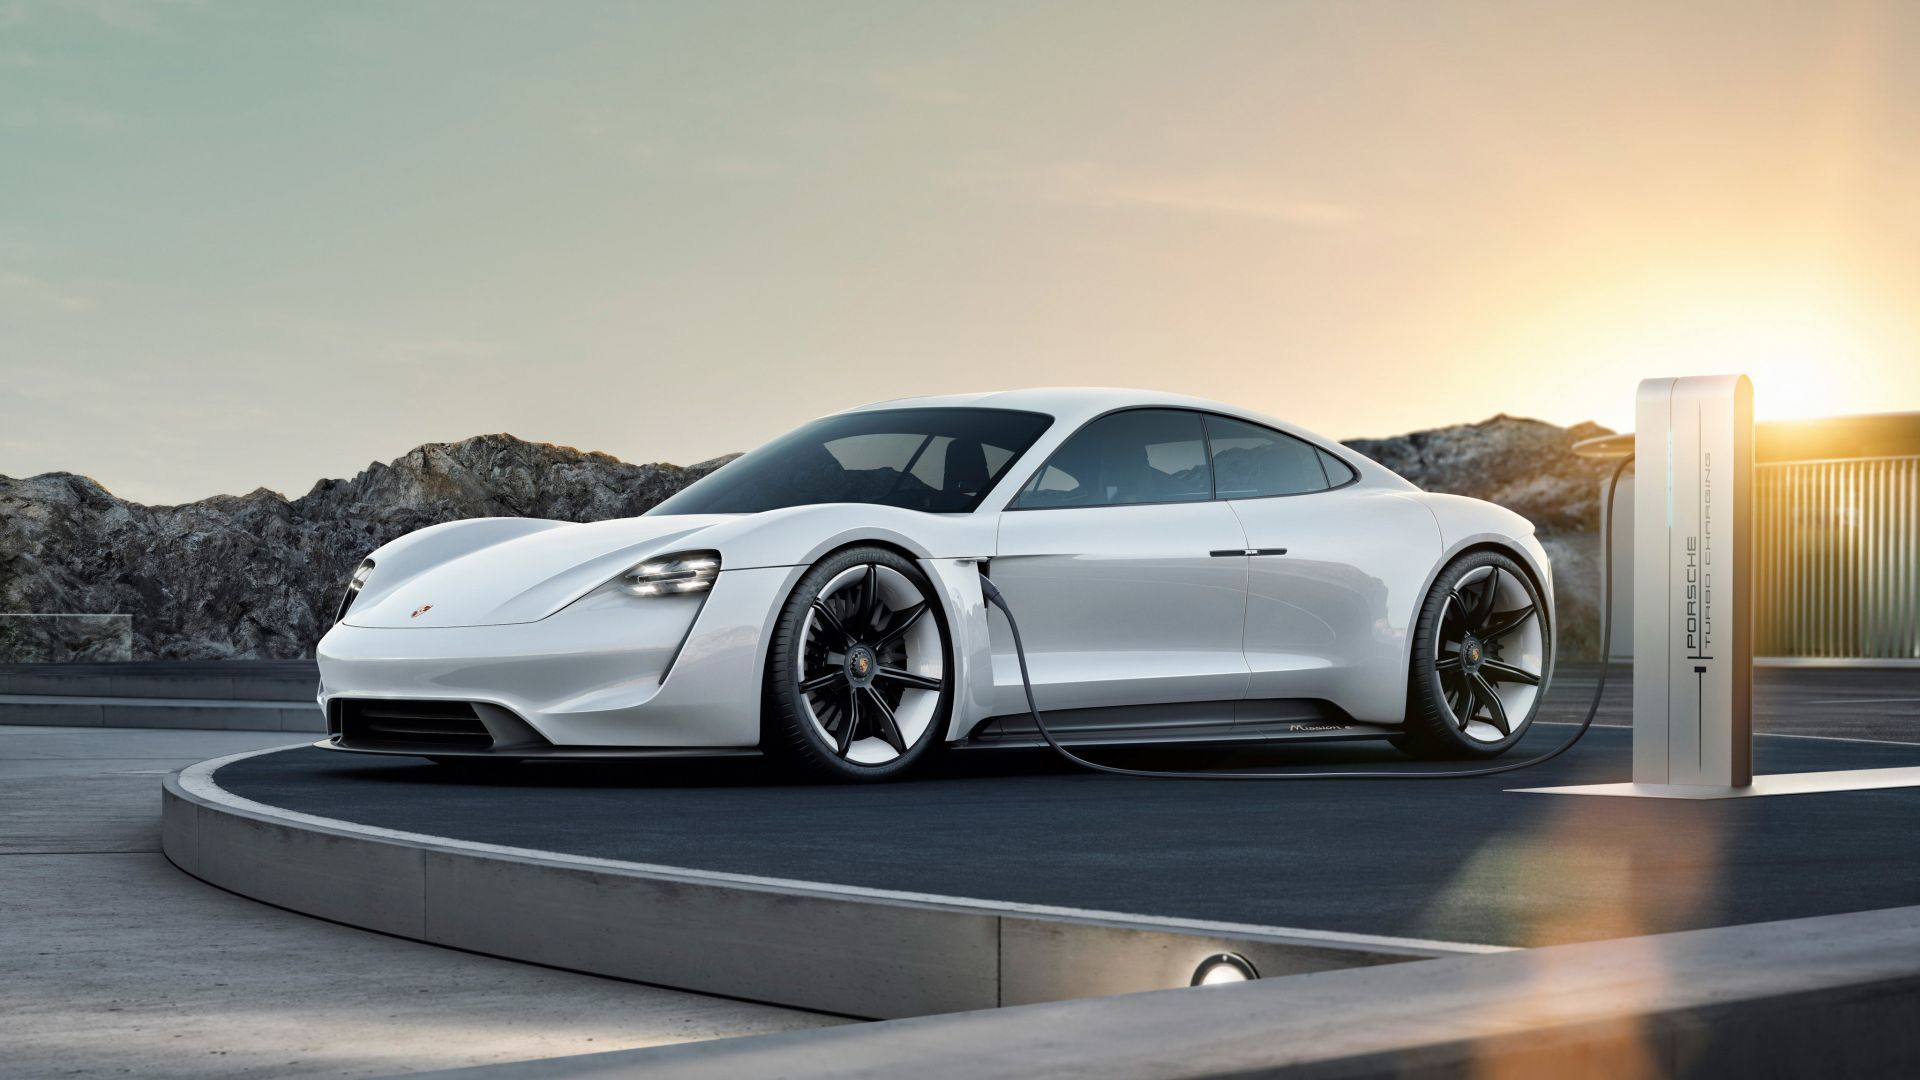 Porsche Taycan Electric Car Supercar 2020 Cars 4k Horizontal Porsche Mission Porsche Taycan Mission E